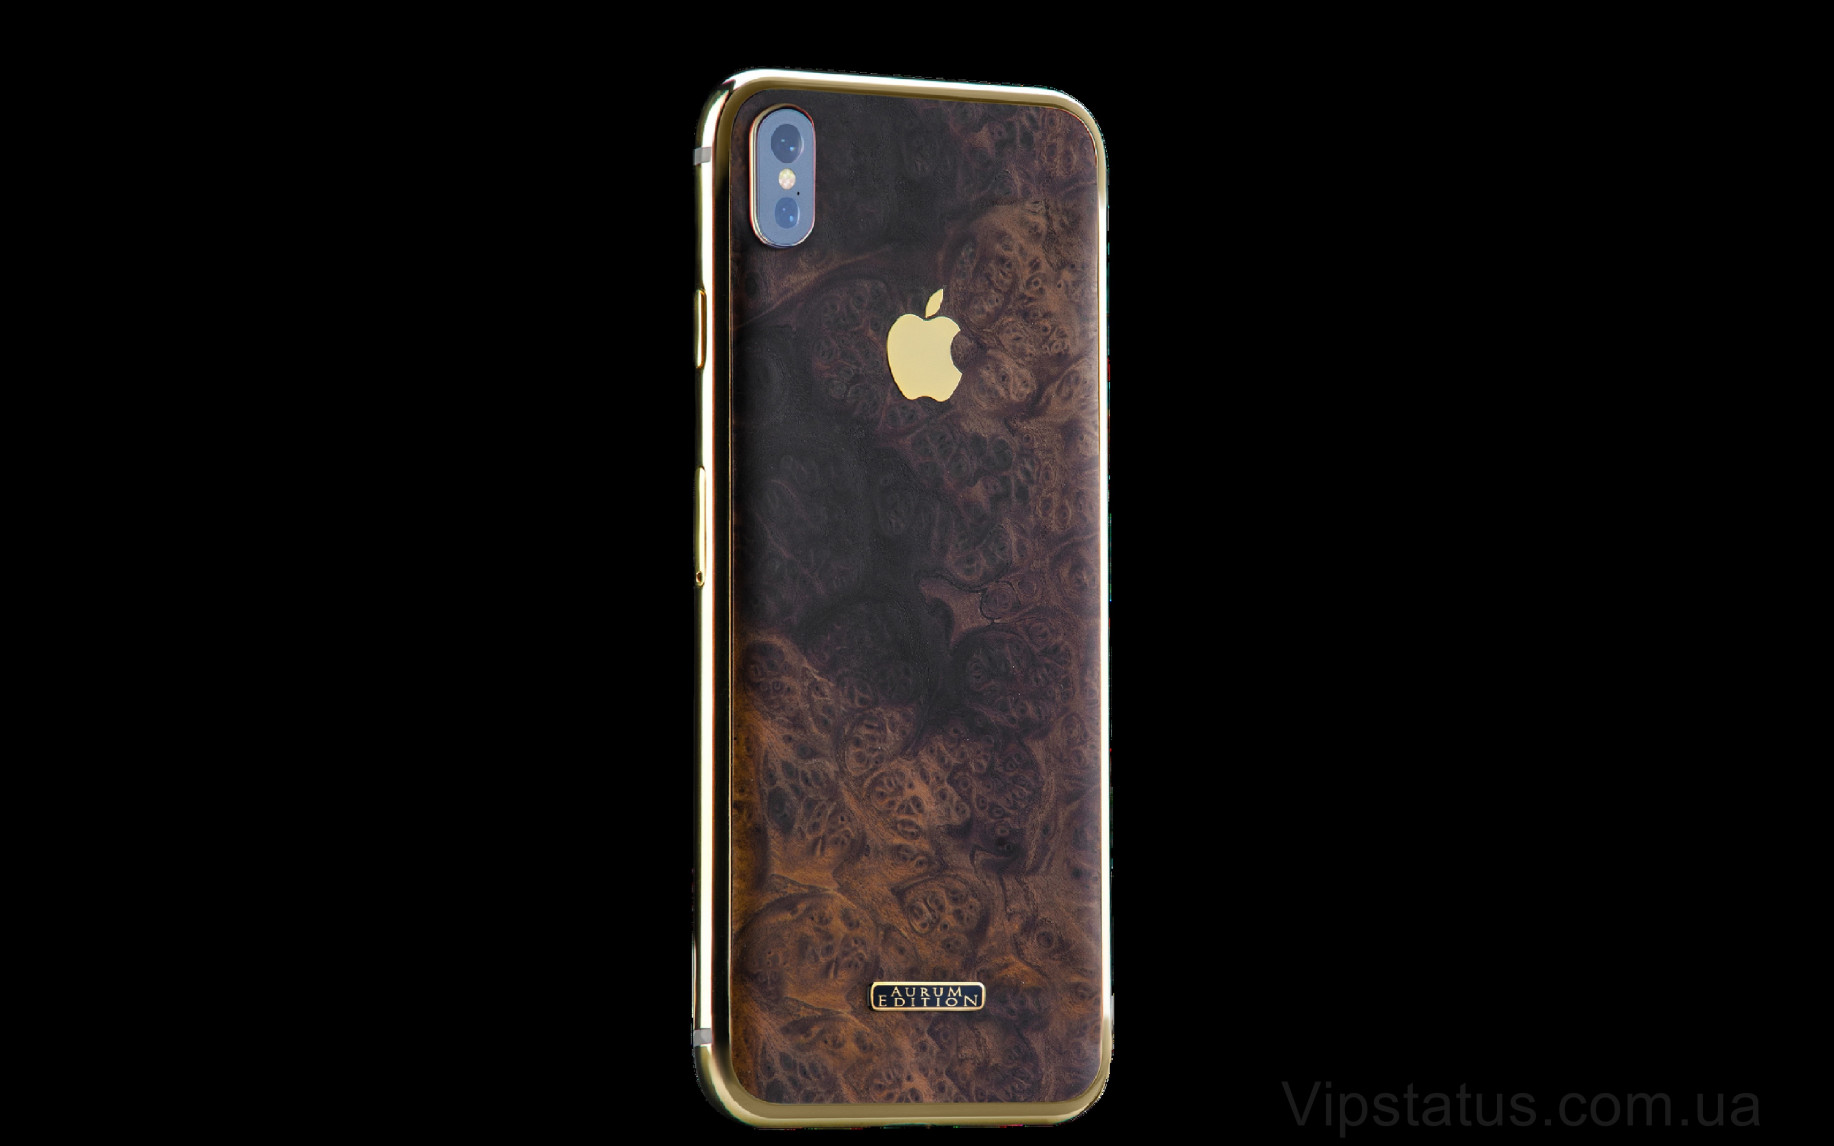 Elite Gold Duke IPHONE 11 PRO MAX 512 GB Gold Duke IPHONE 11 PRO MAX 512 GB image 1